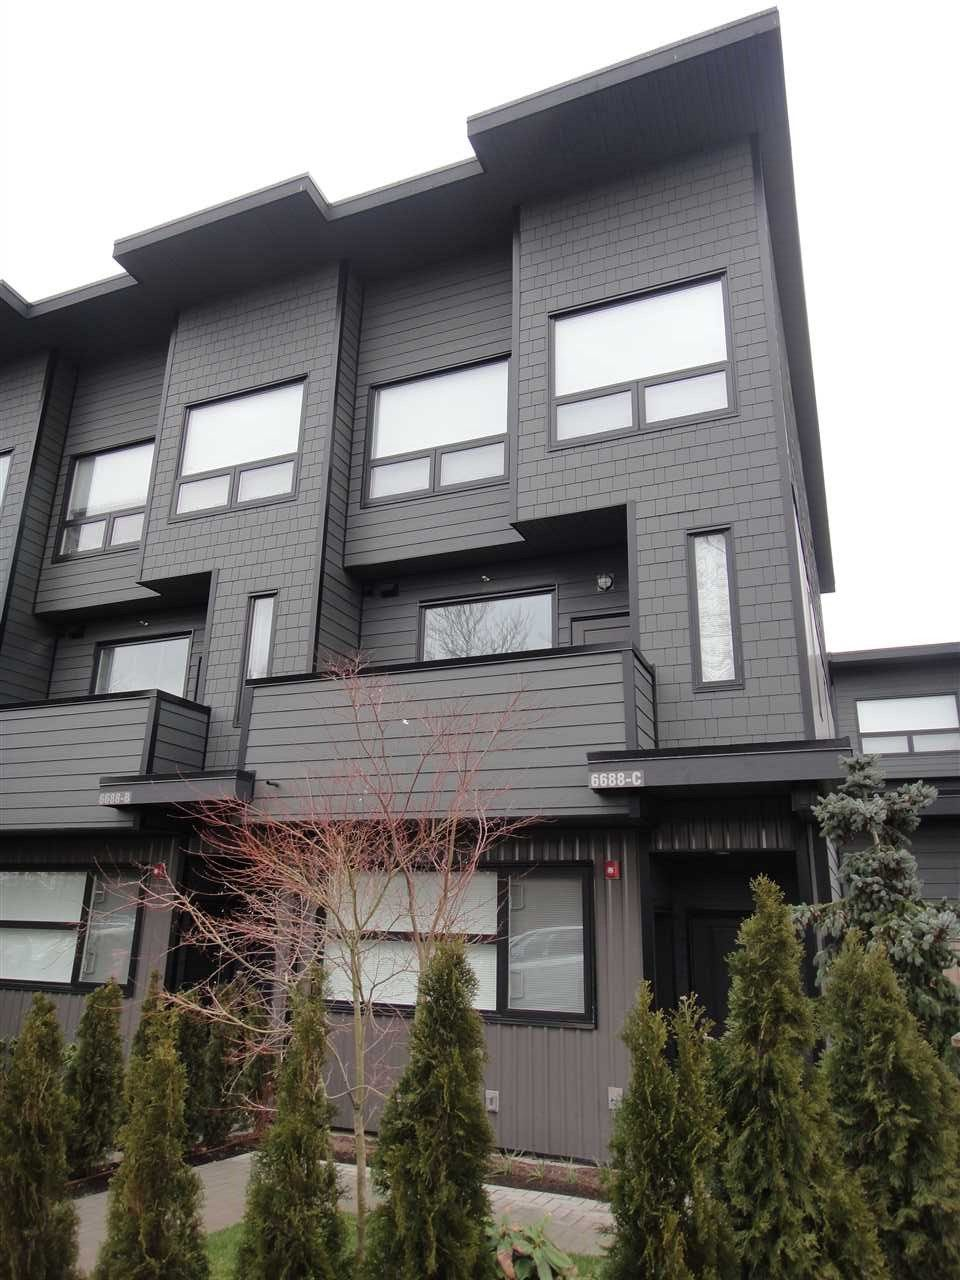 """Photo 3: Photos: C 6688 DUFFERIN Avenue in Burnaby: Upper Deer Lake Townhouse for sale in """"DUFFERIN EIGHT TOWNHOMES"""" (Burnaby South)  : MLS®# R2027335"""